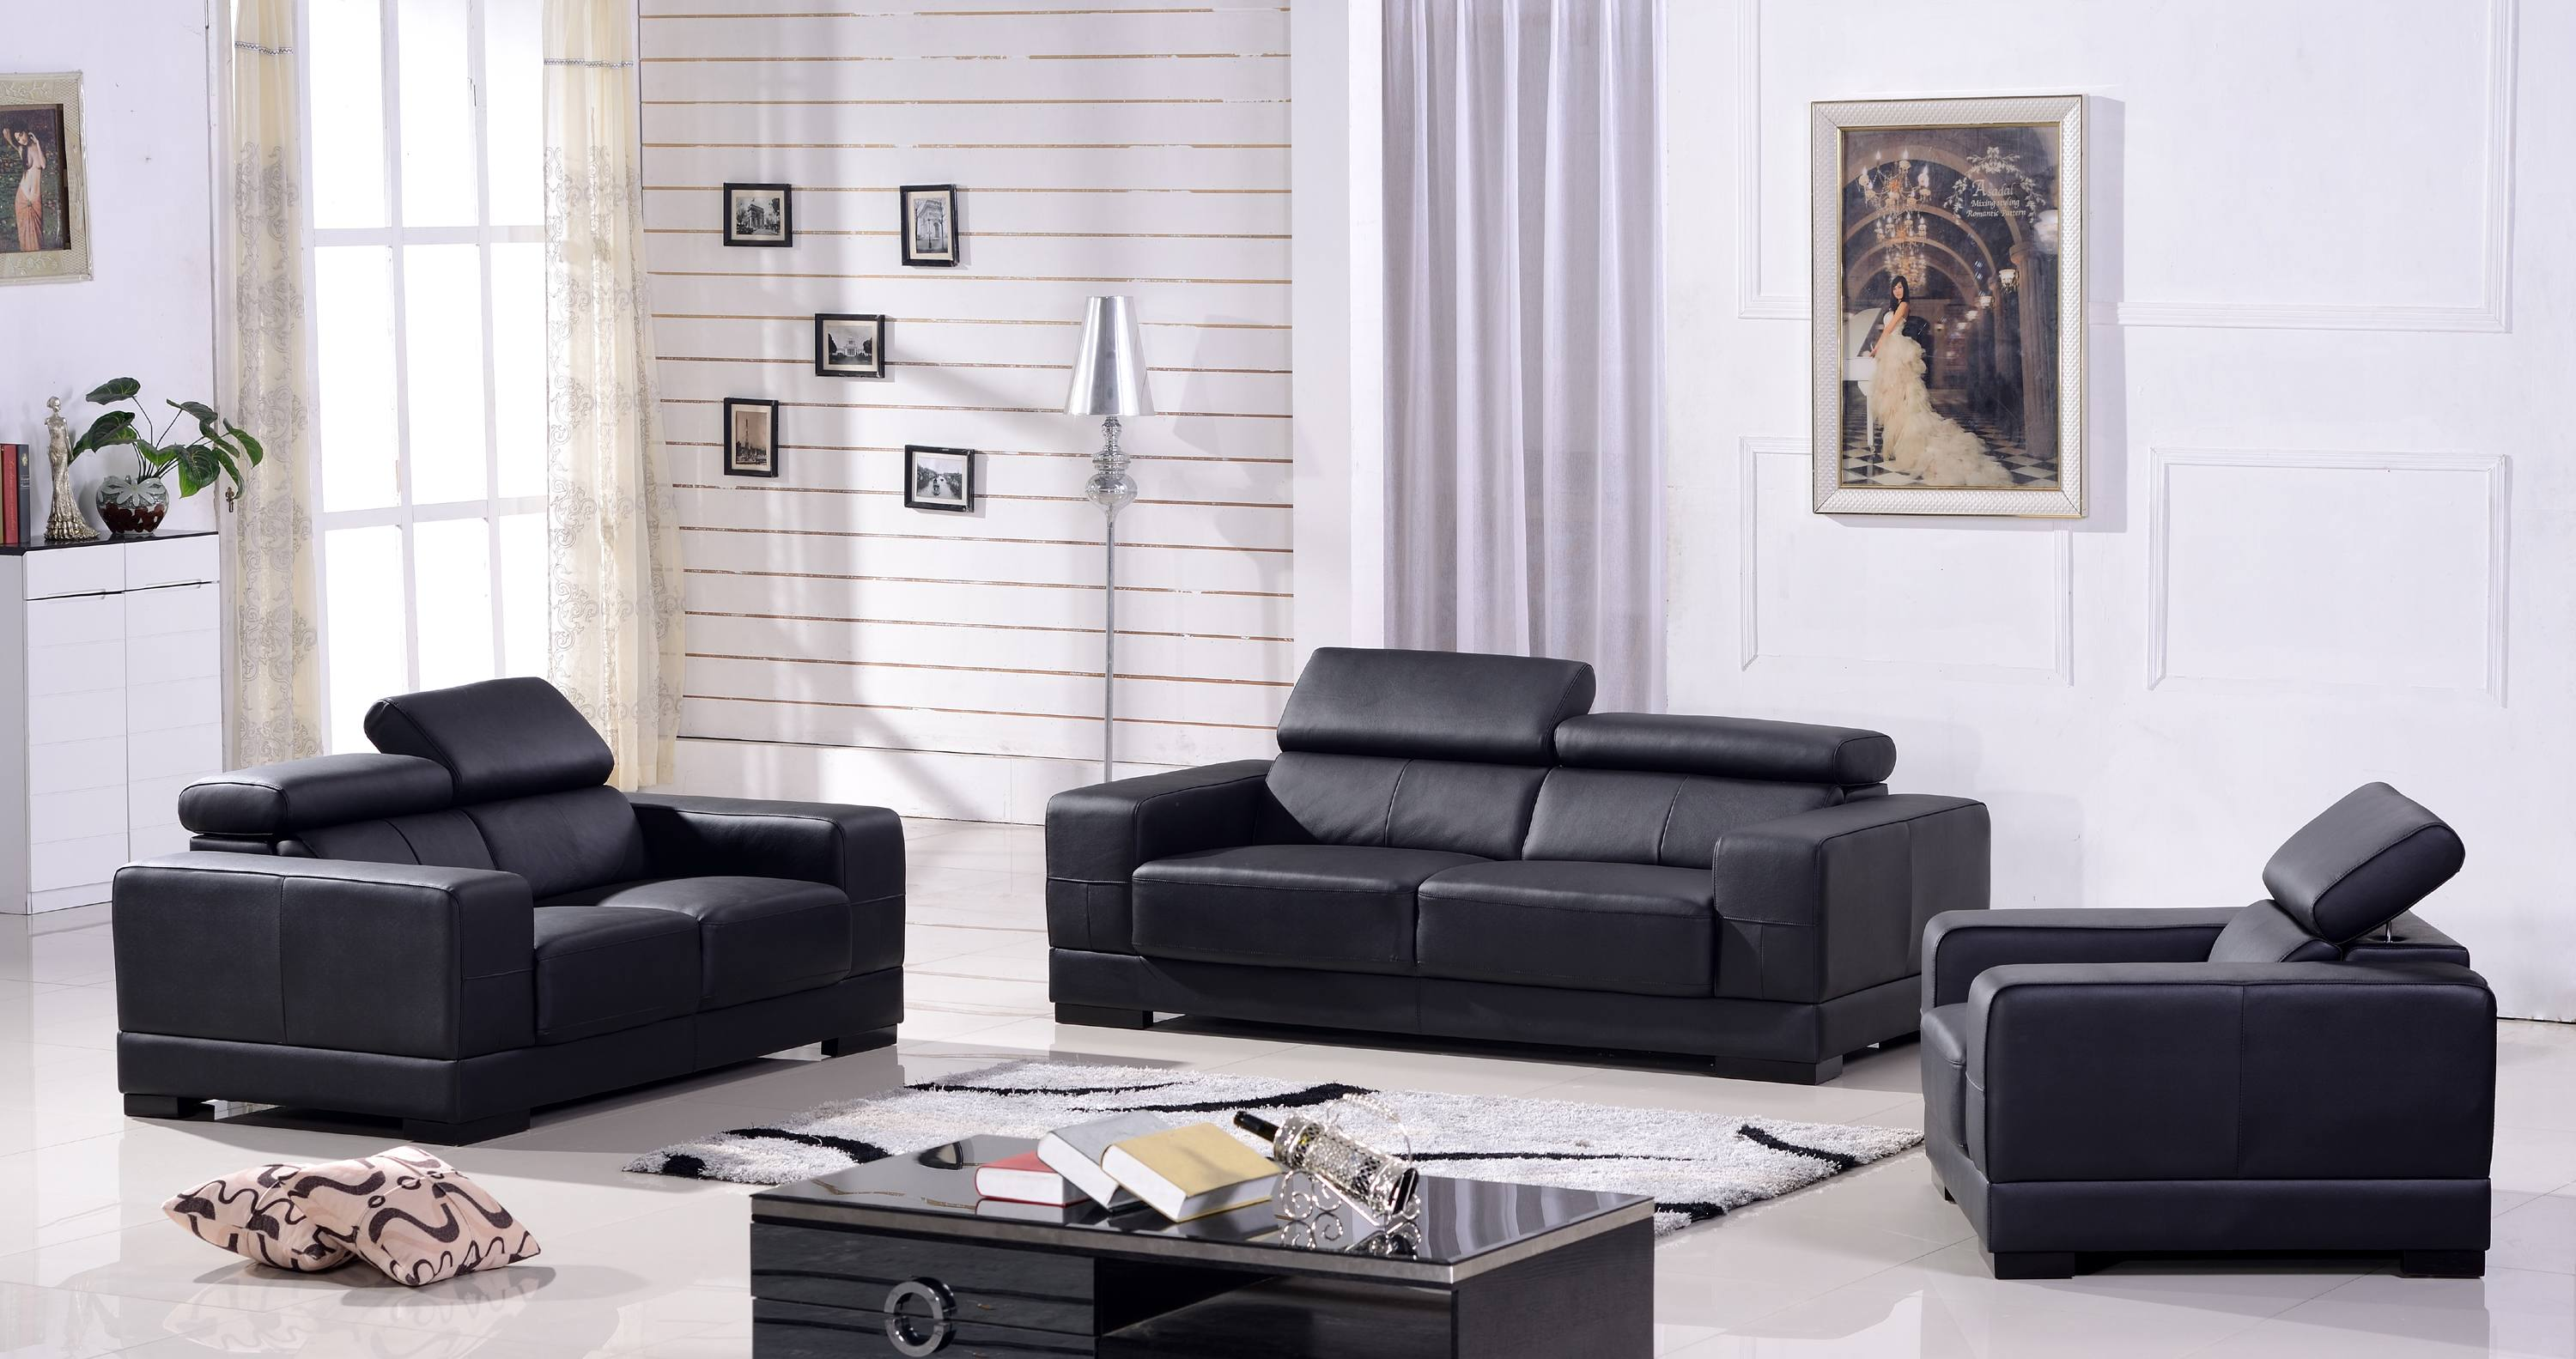 ledersofa 3 2 1 sofa couch sitzgarnitur sofas sitzgruppe 2017 3 2 1 s ebay. Black Bedroom Furniture Sets. Home Design Ideas